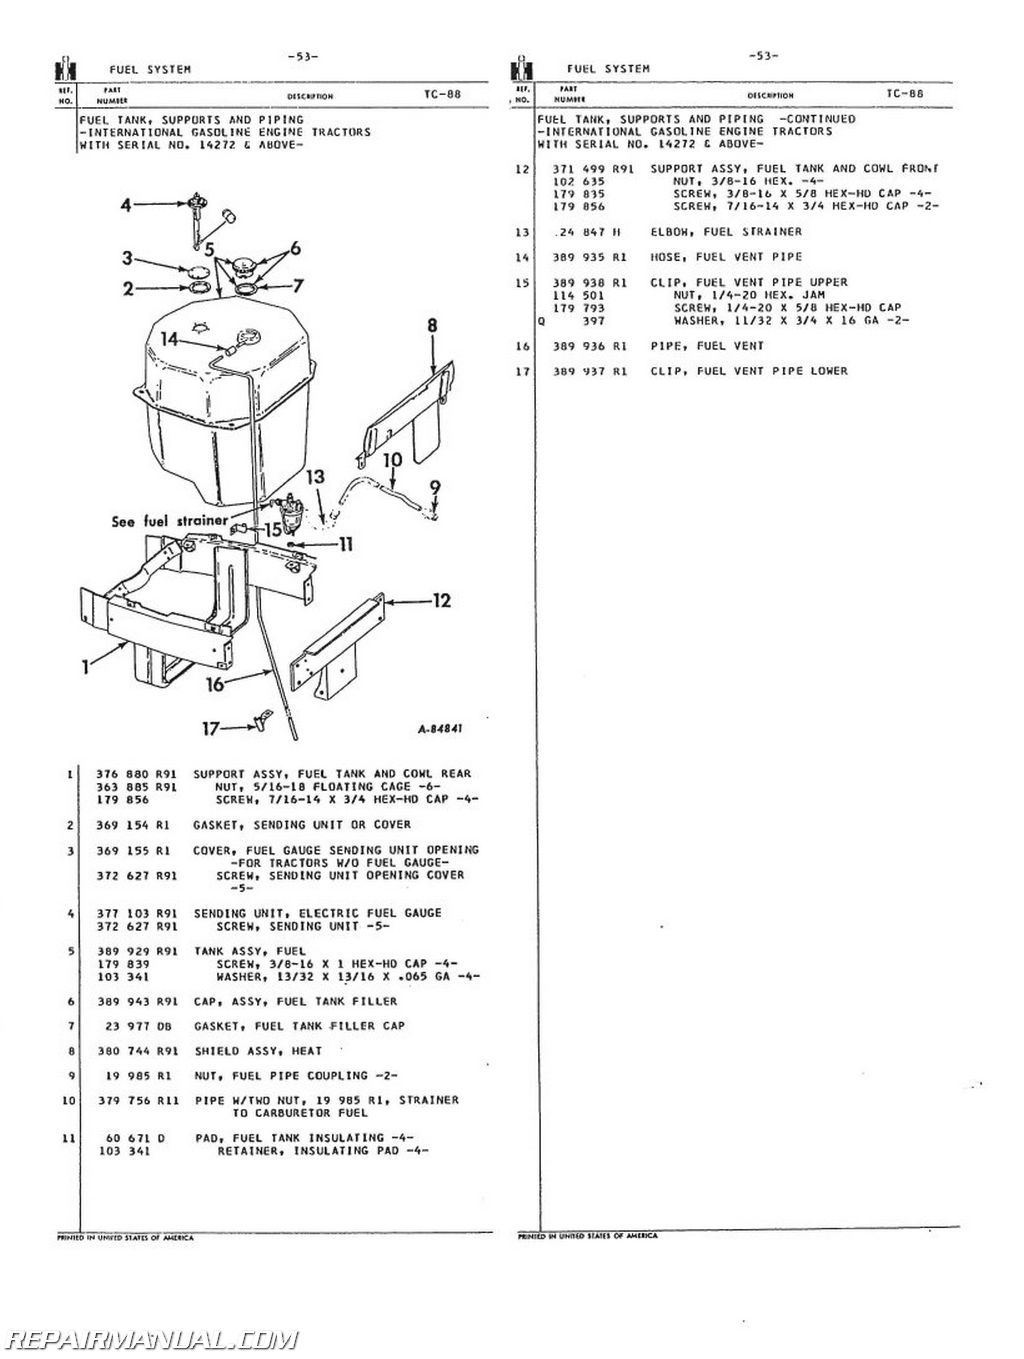 hight resolution of international harvester 504 2504 gas lp and dsl parts manual rh repairmanual com